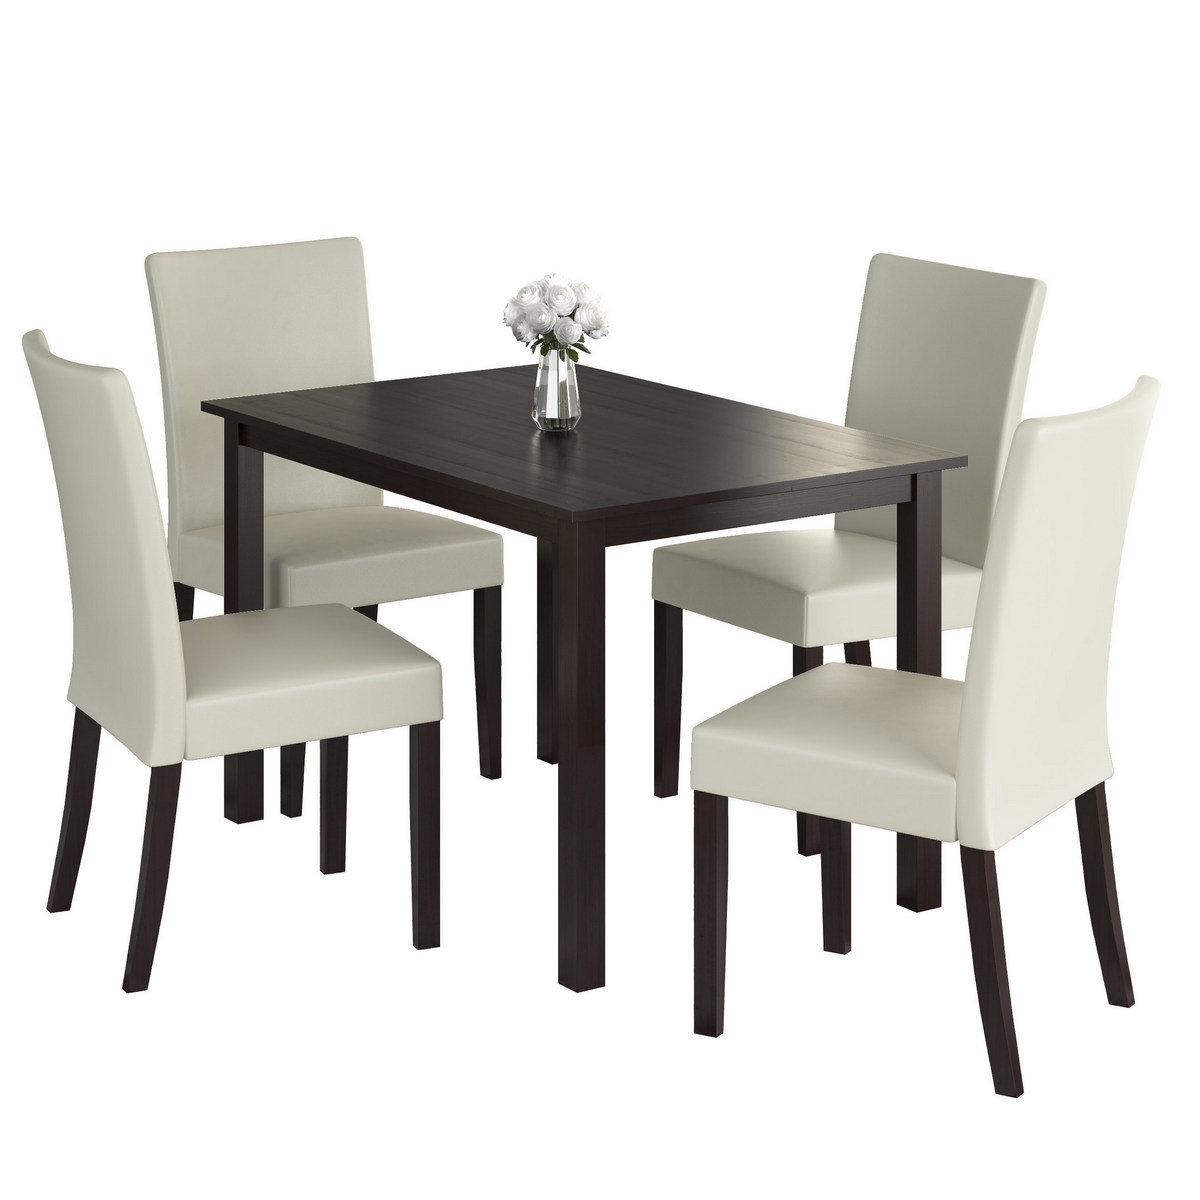 Dining Set Cream Leatherette Seats